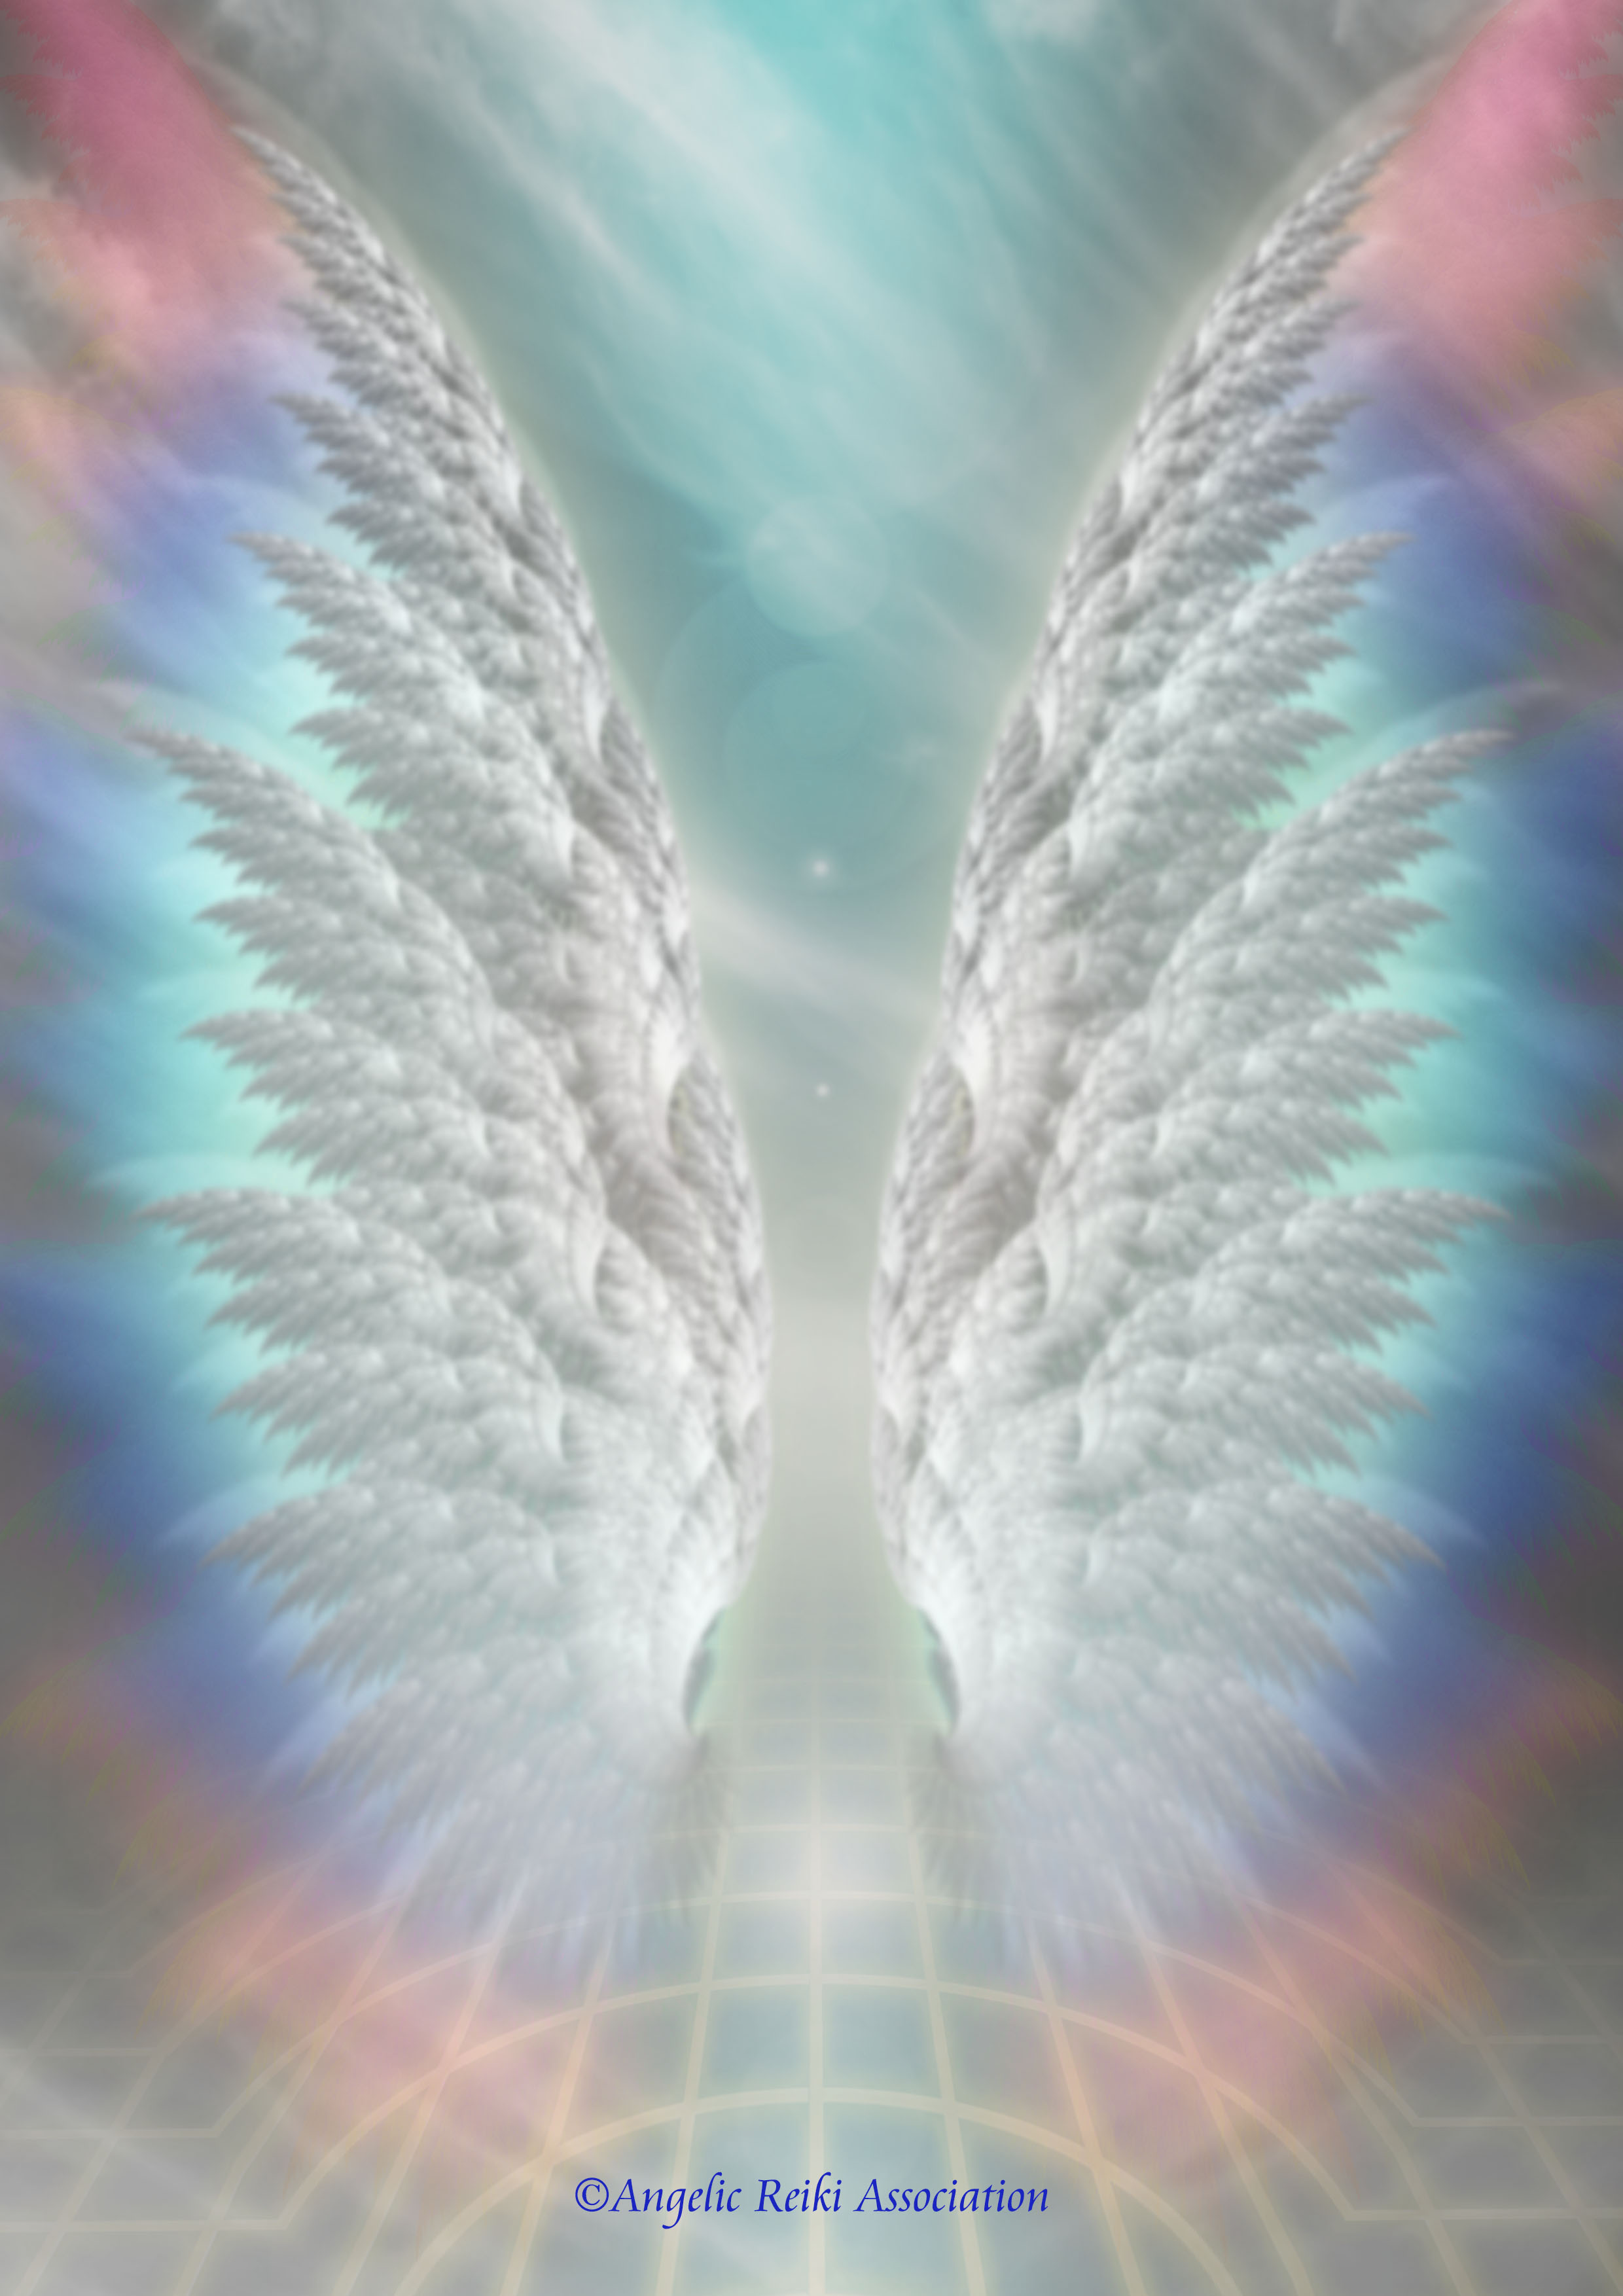 Angelic Reiki logo for Colleen Tucker